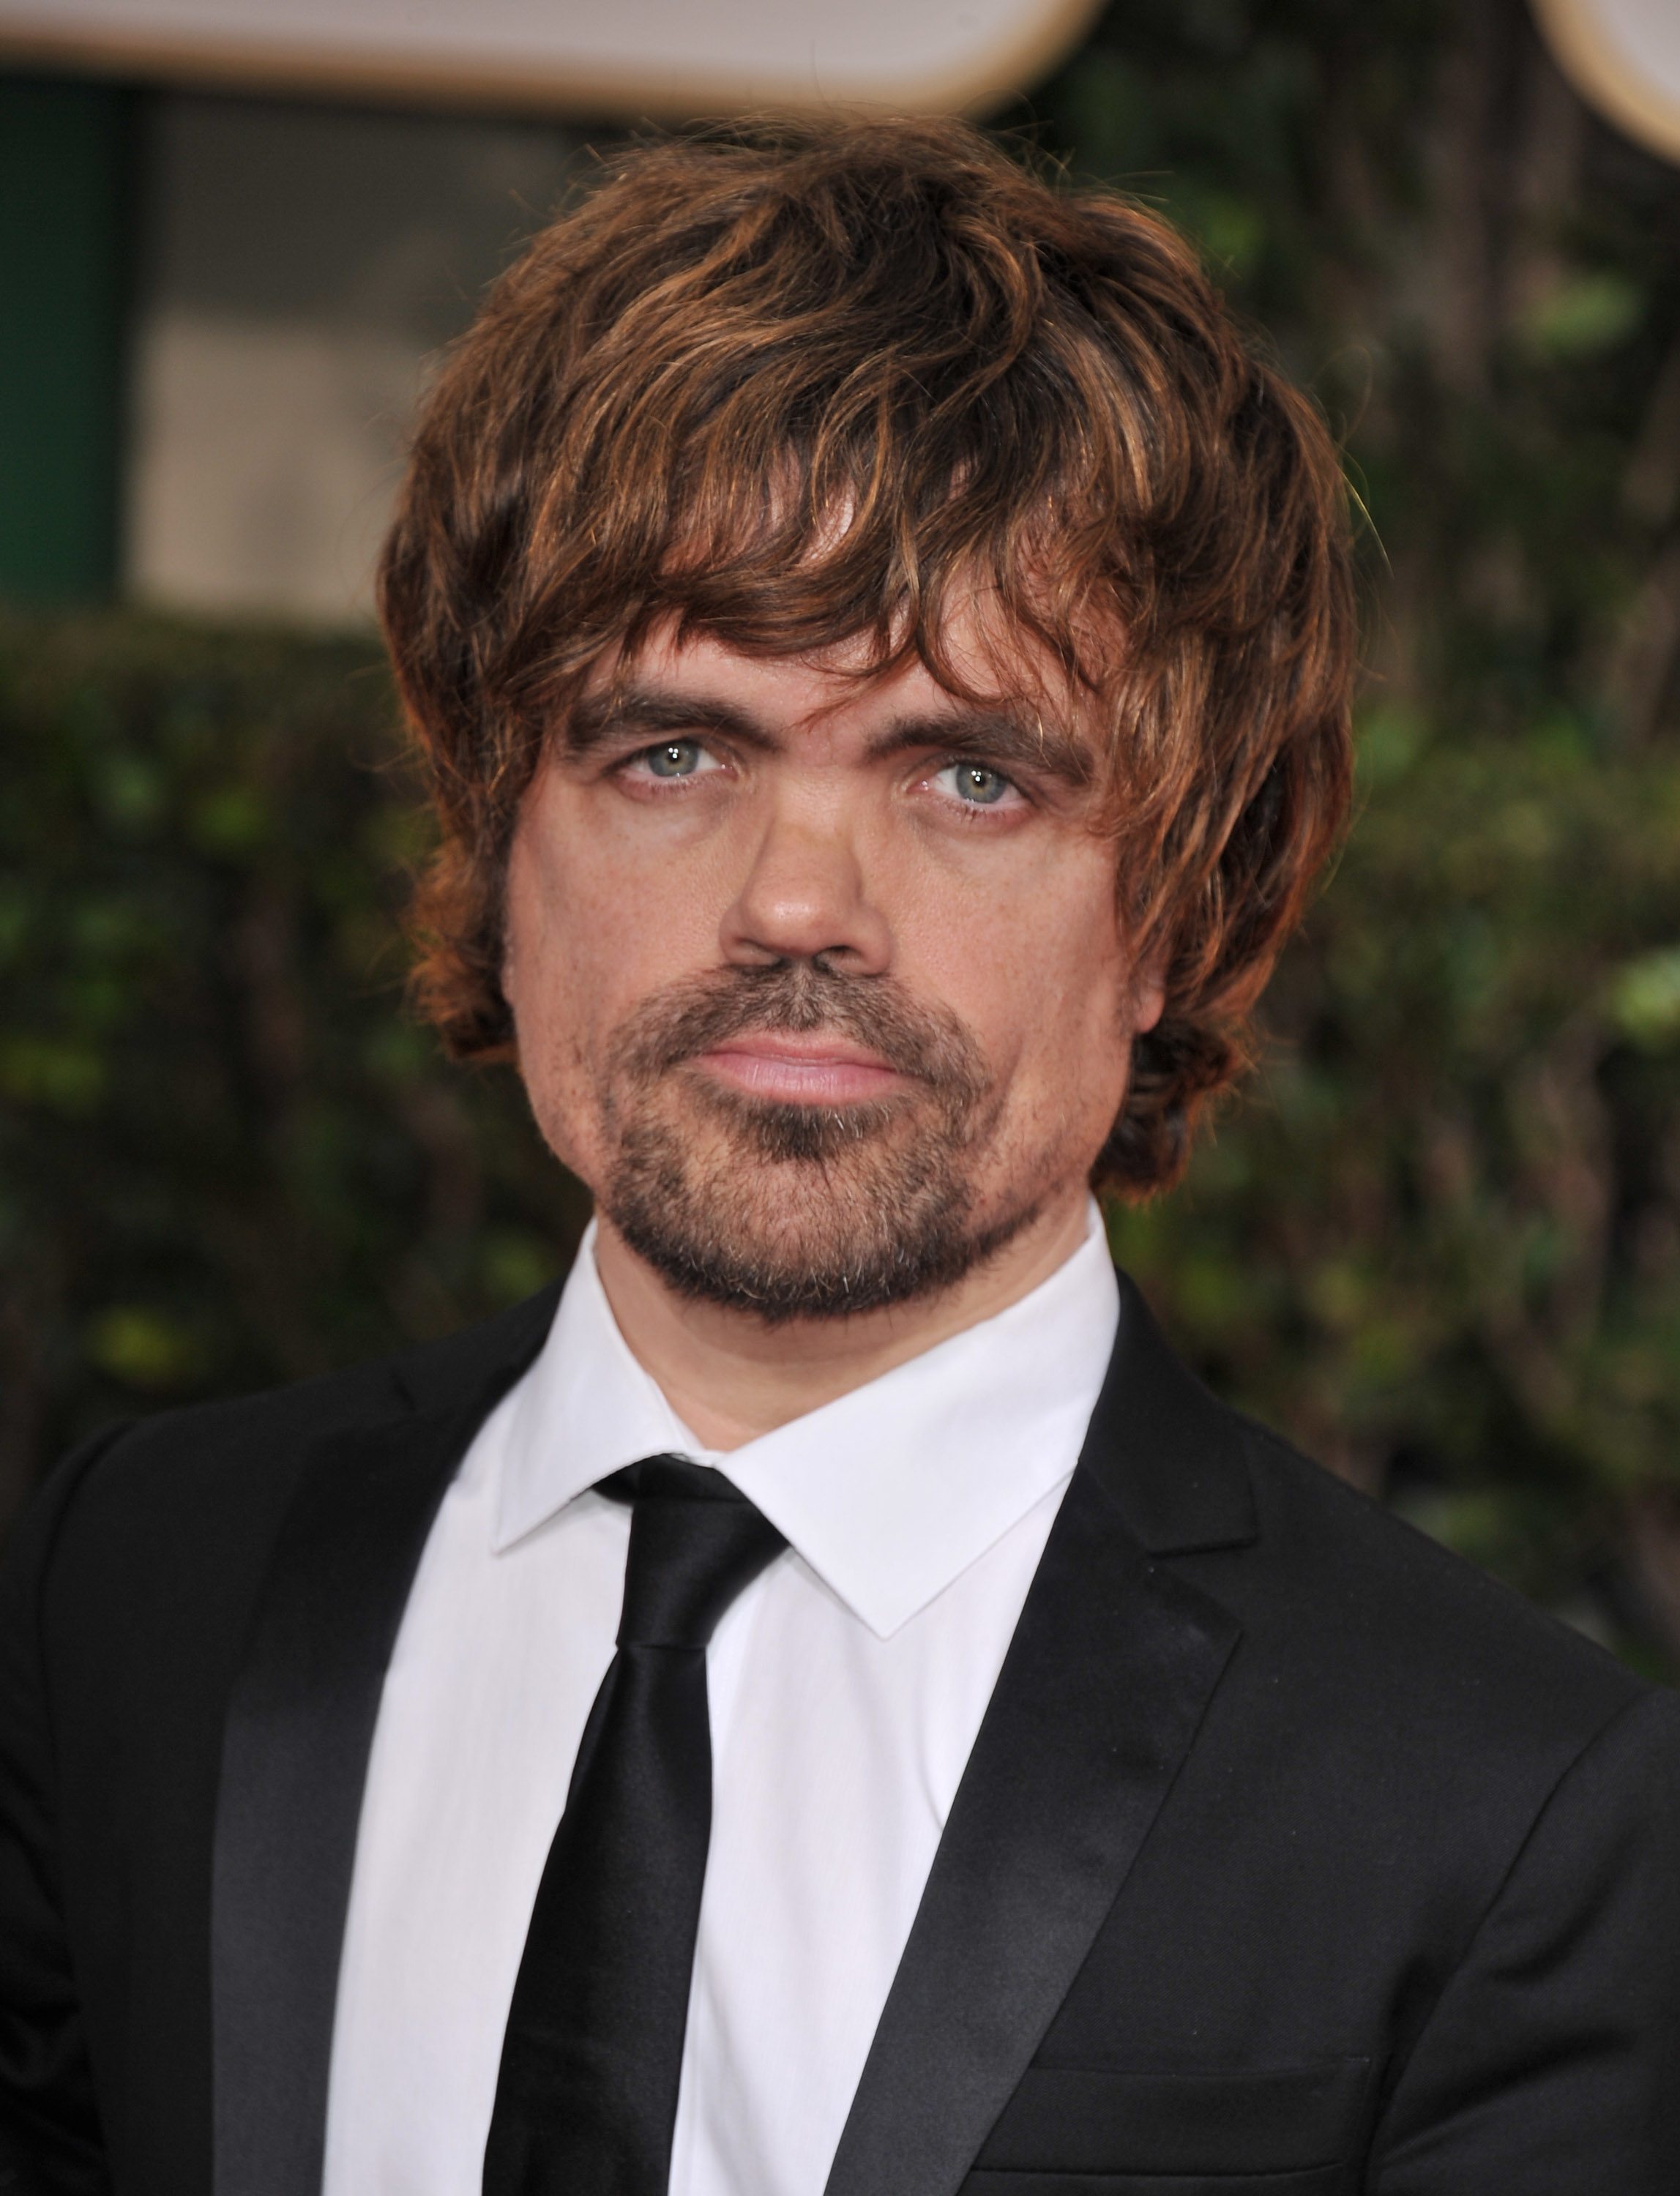 Peter Dinklage Wallpapers High Quality   Download Free